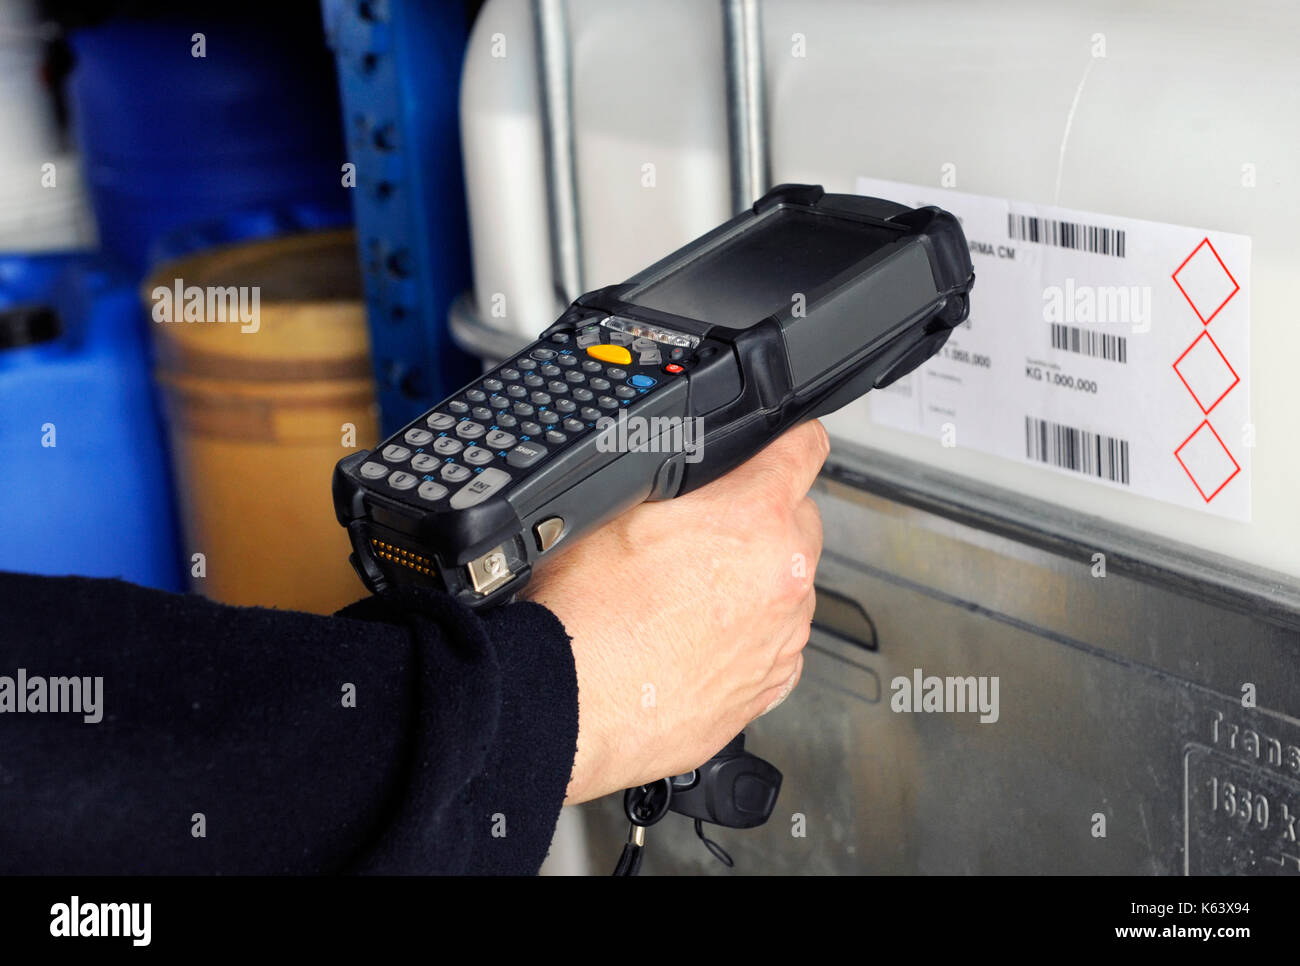 Human hand holding barcode scanner for scanning codes - Stock Image